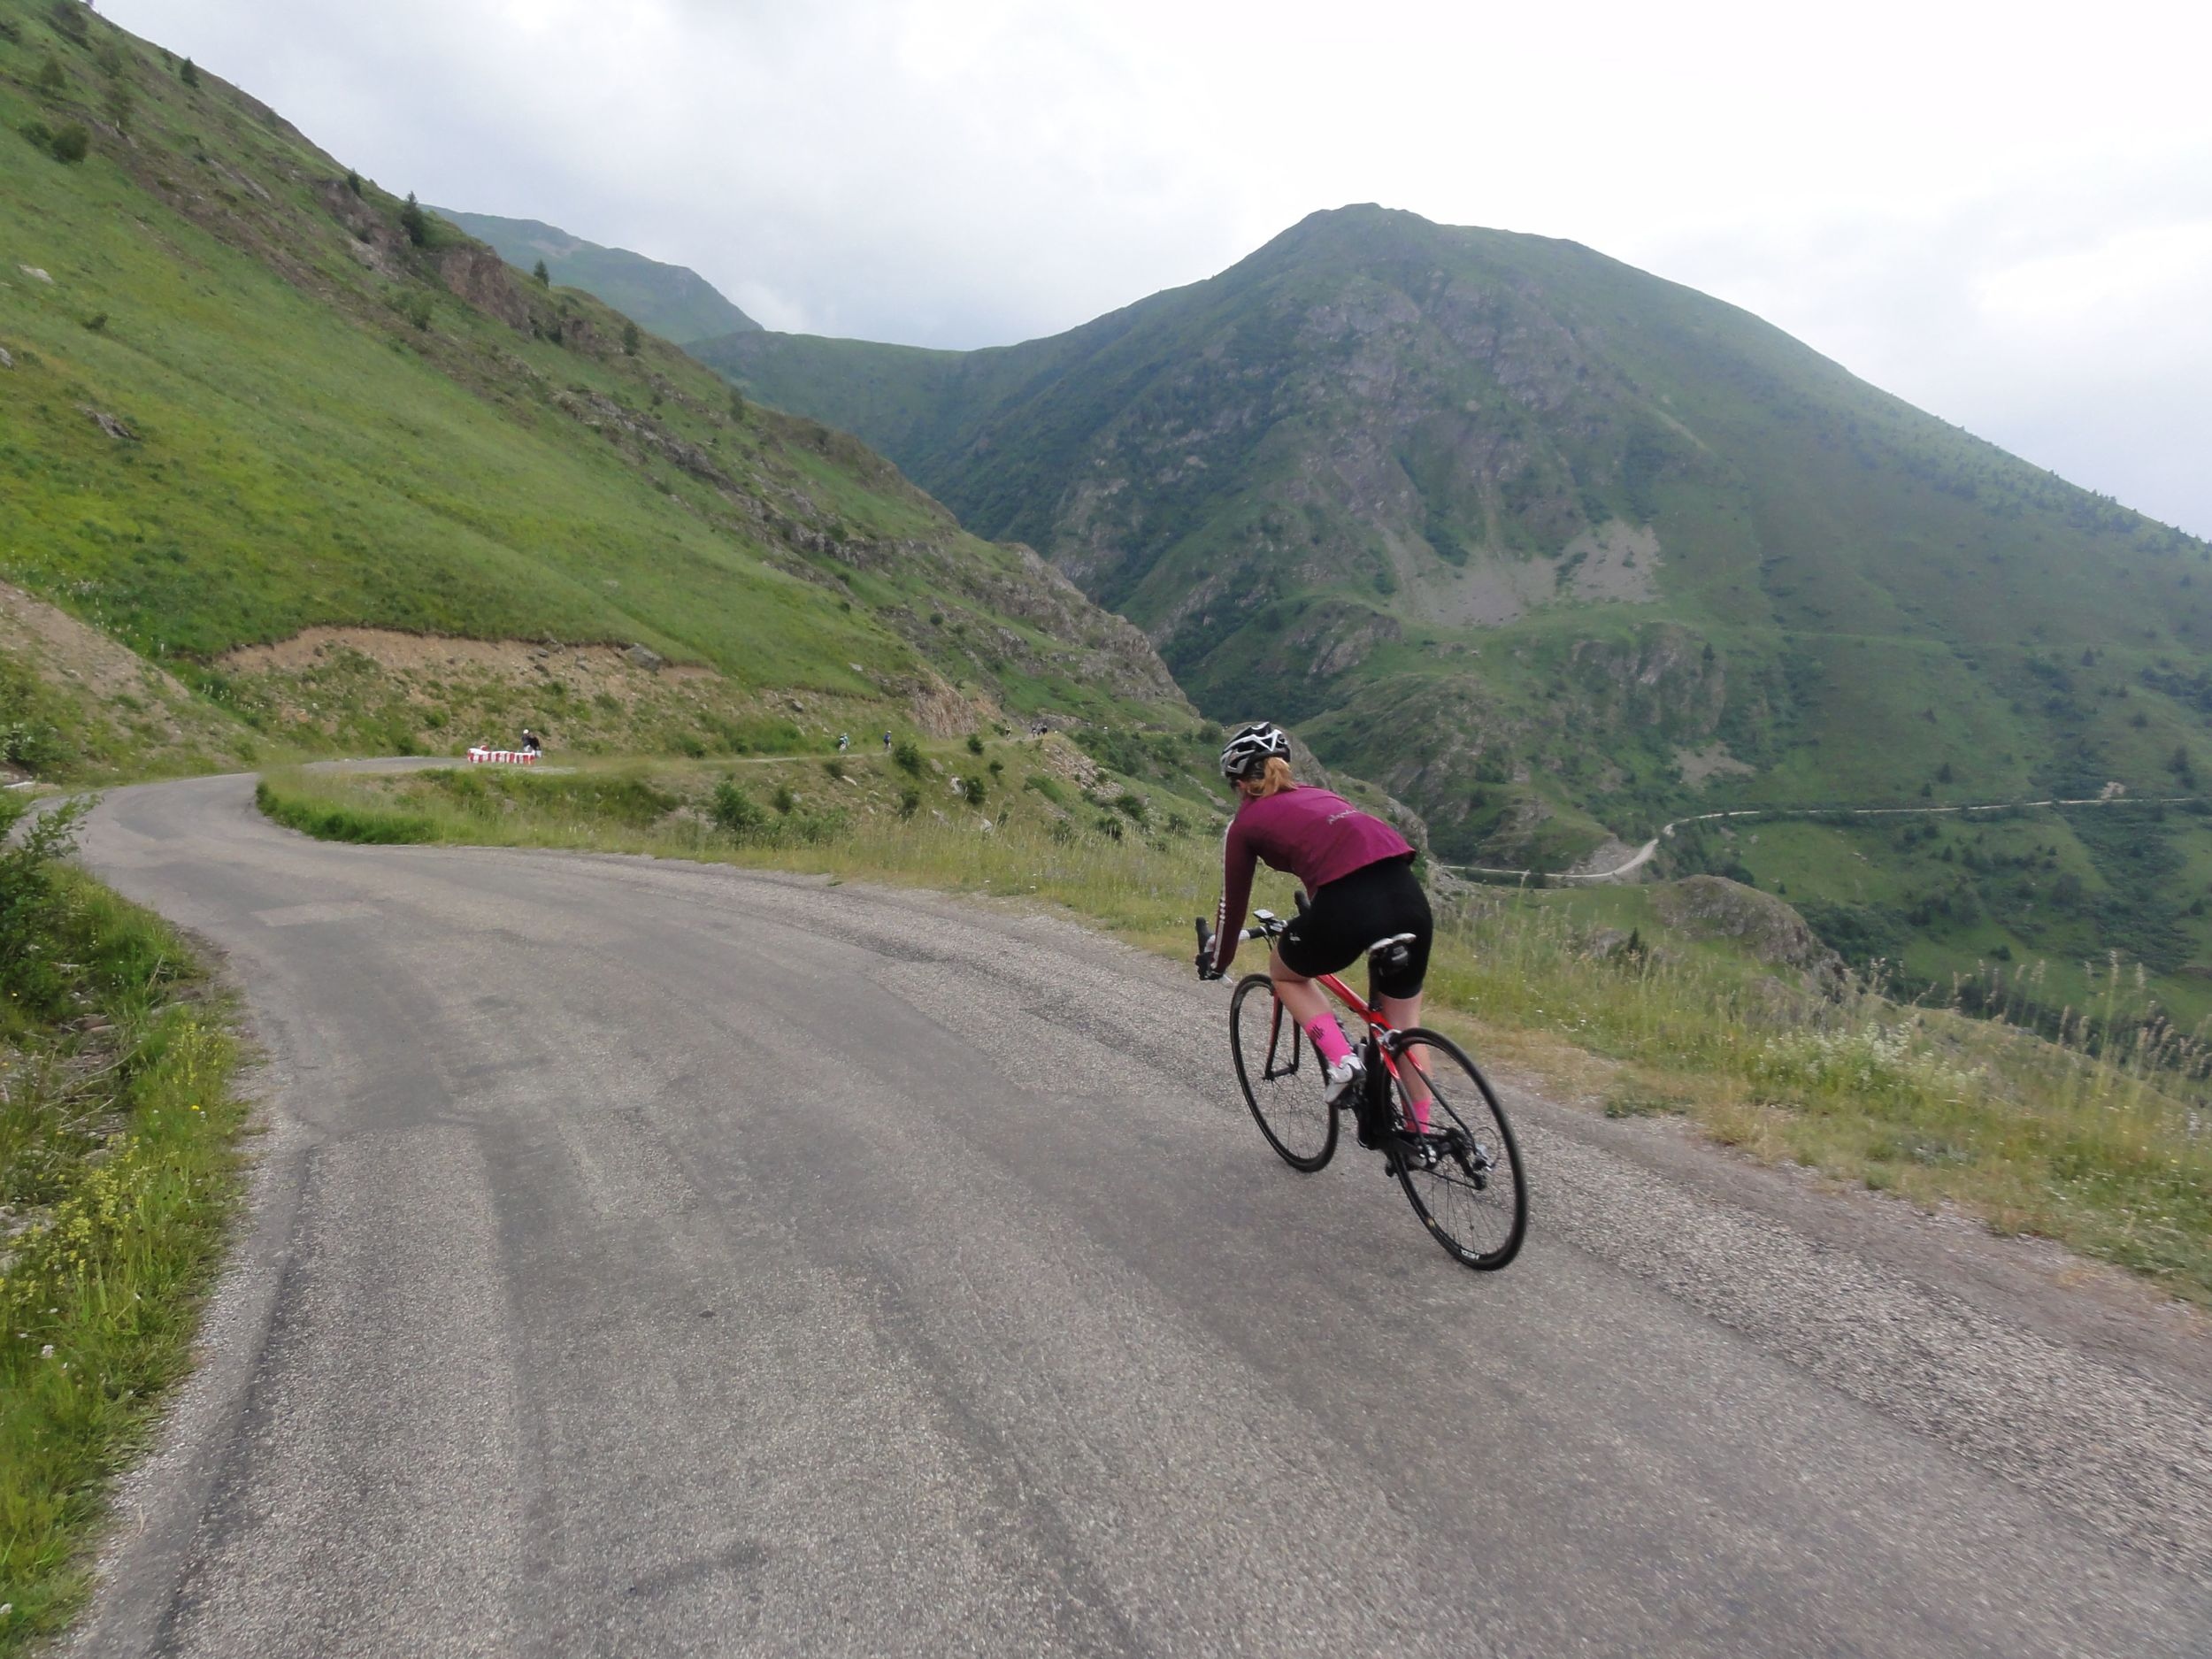 The balcony road from Alpe-d'Huez to the Col de Sarenne was breathtaking!